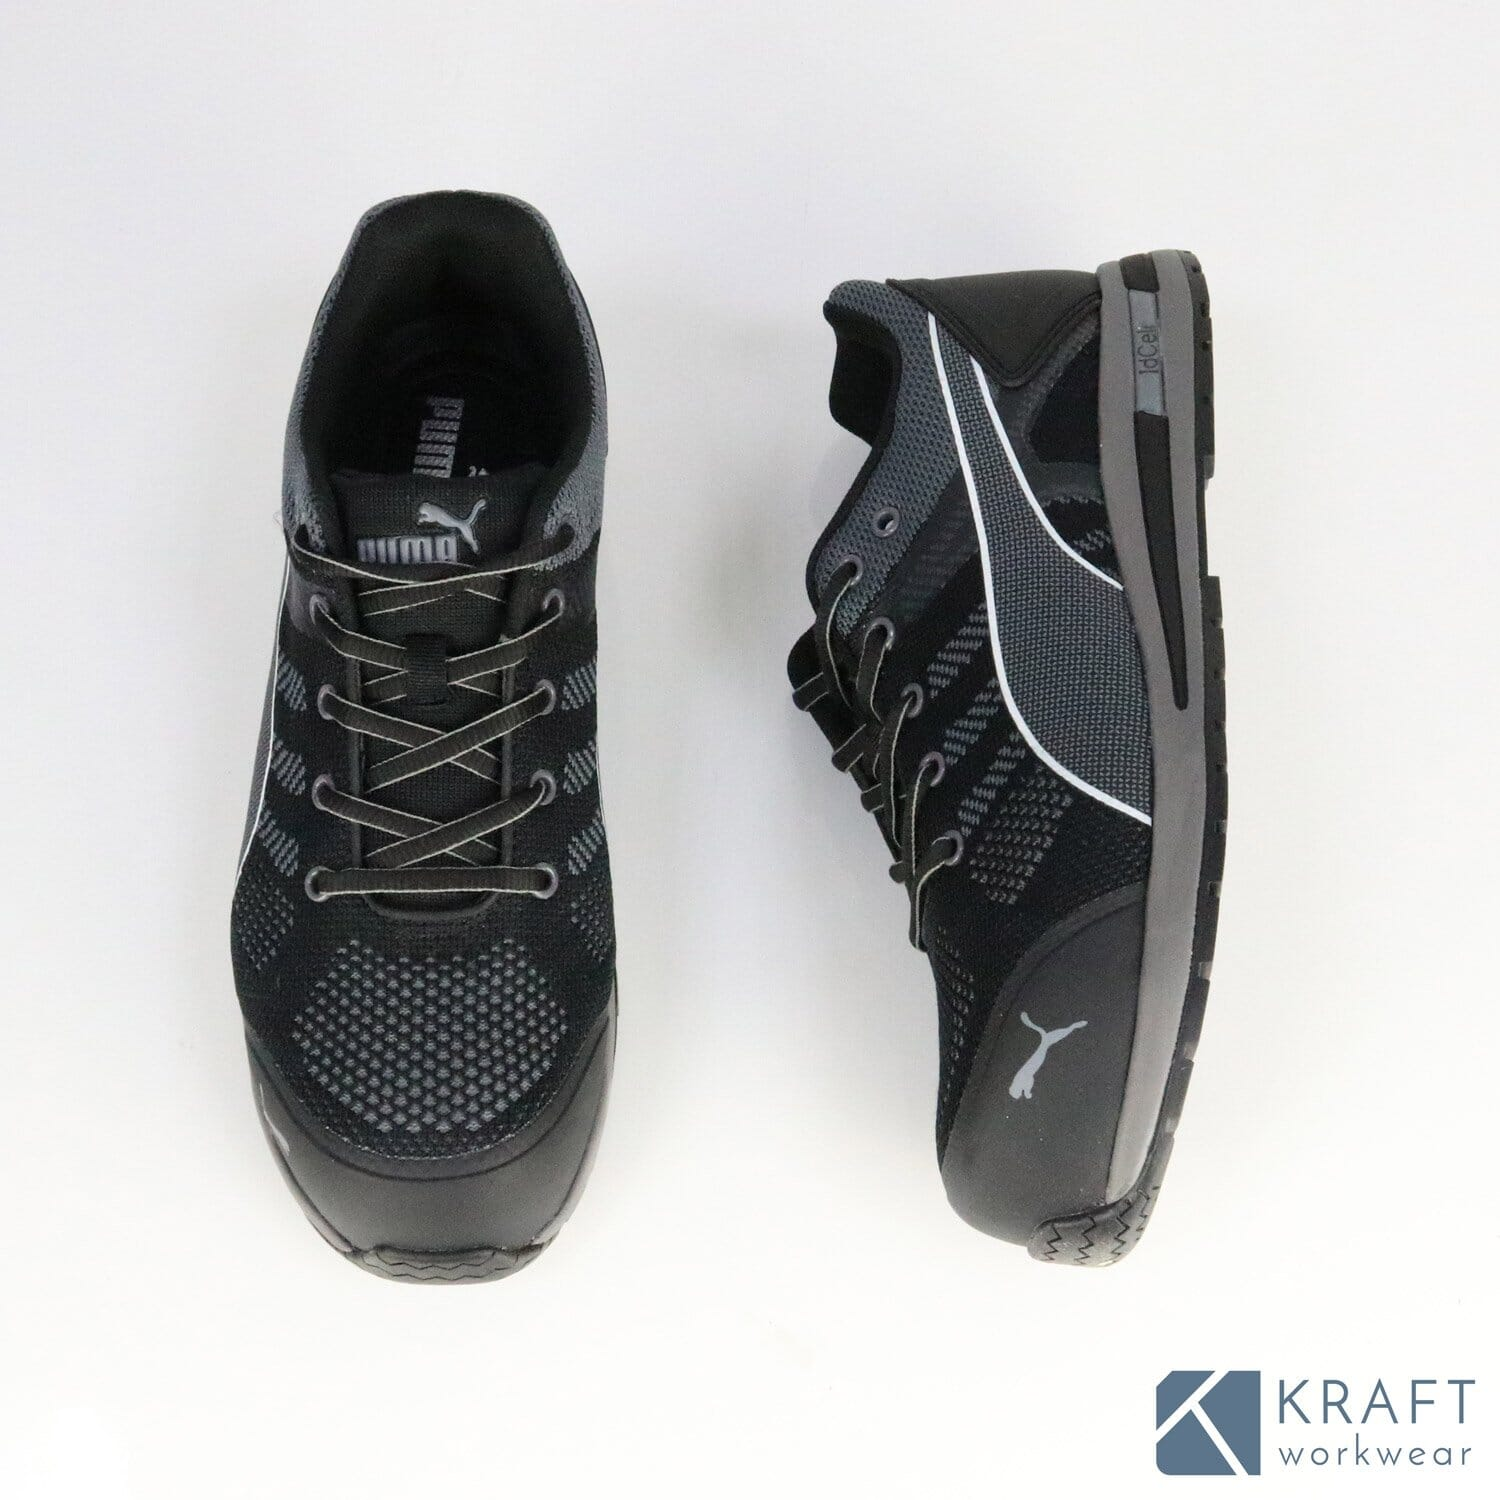 Chaussures de sécurité S1P ELEVATE KNIT BLACK LOW Puma Safety